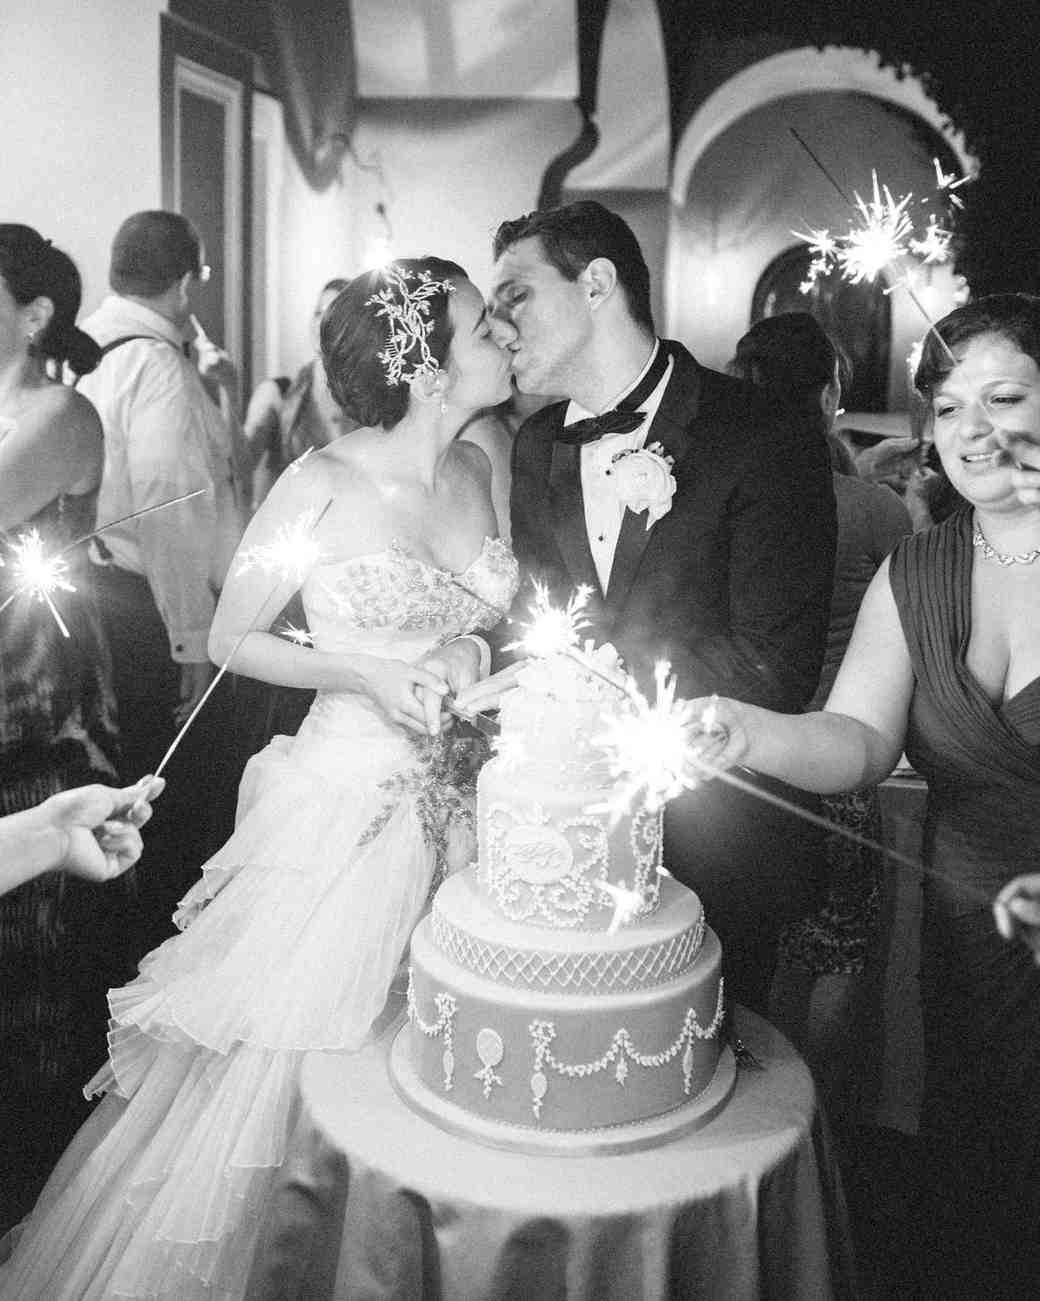 michelle-christopher-positano-reception-cake-bride-groom-1239-s111681.jpg